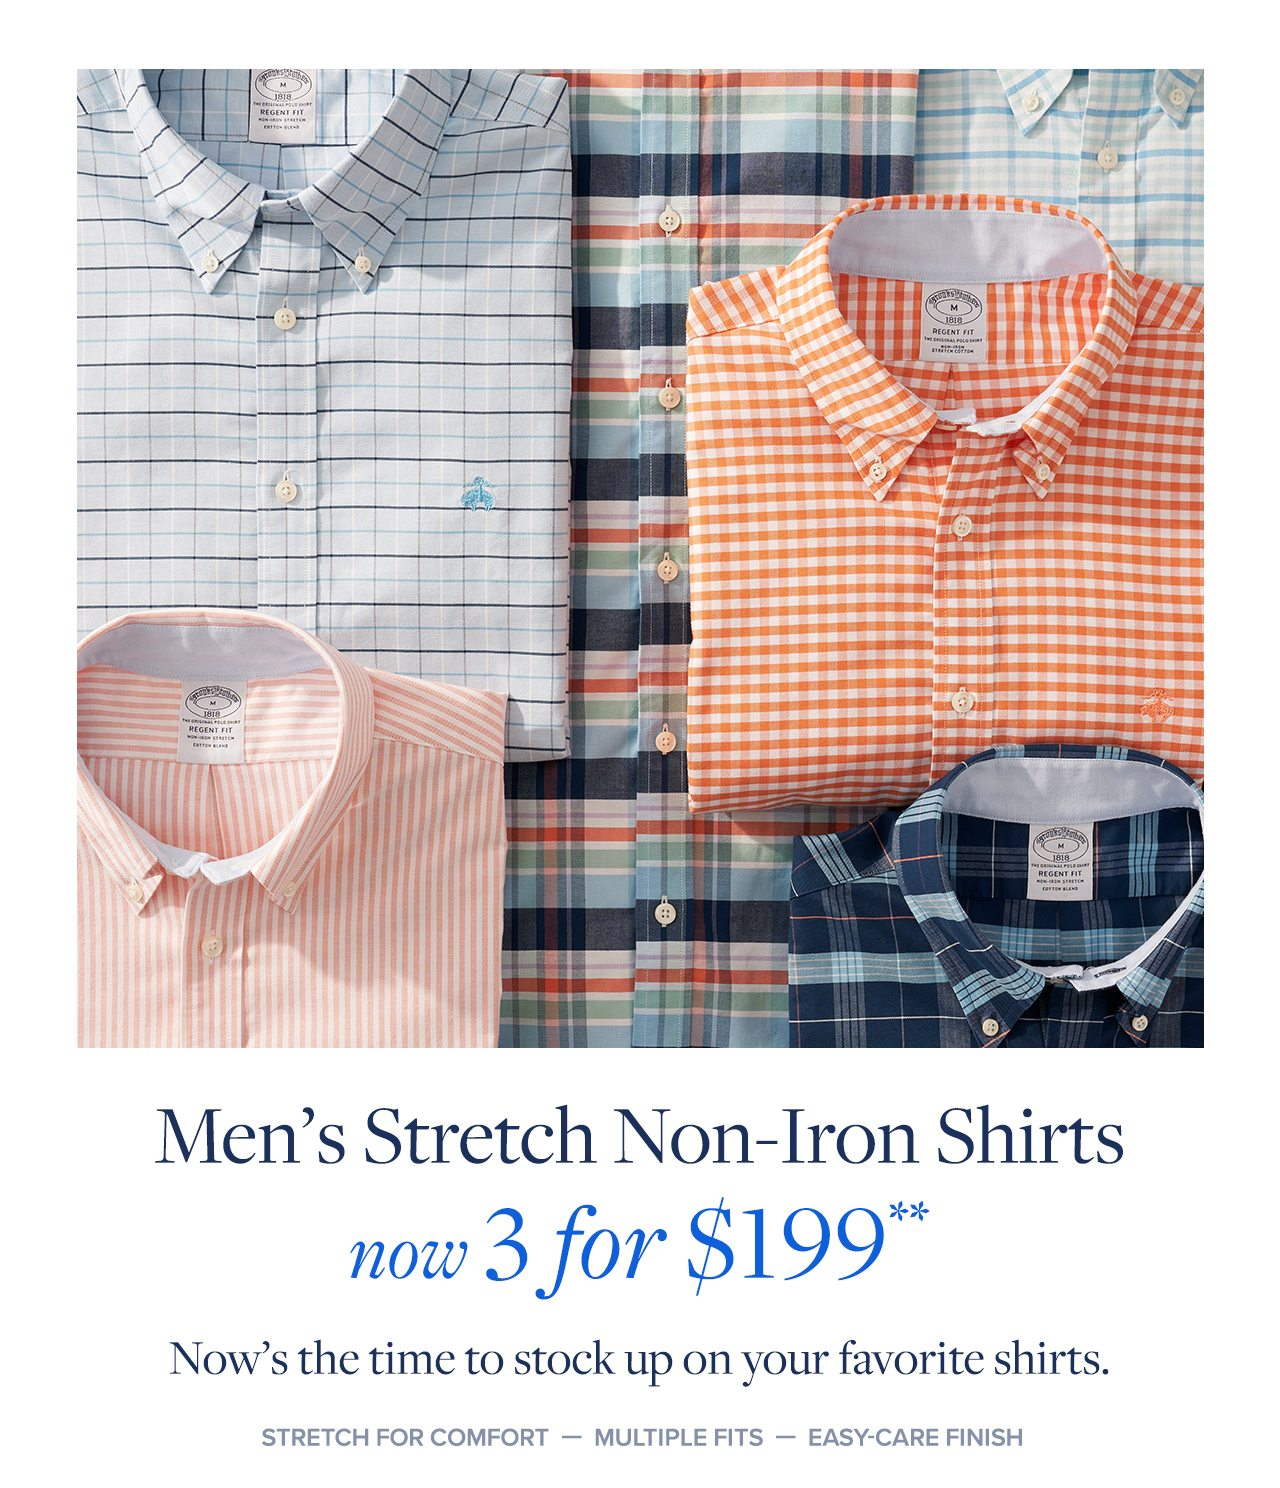 Men's Stretch Non-Iron Shirts now 3 for $199 Now's the time to stock up on your favorite shirts. Stretch For Comfort - Multiple Fits - Easy-Care Finish